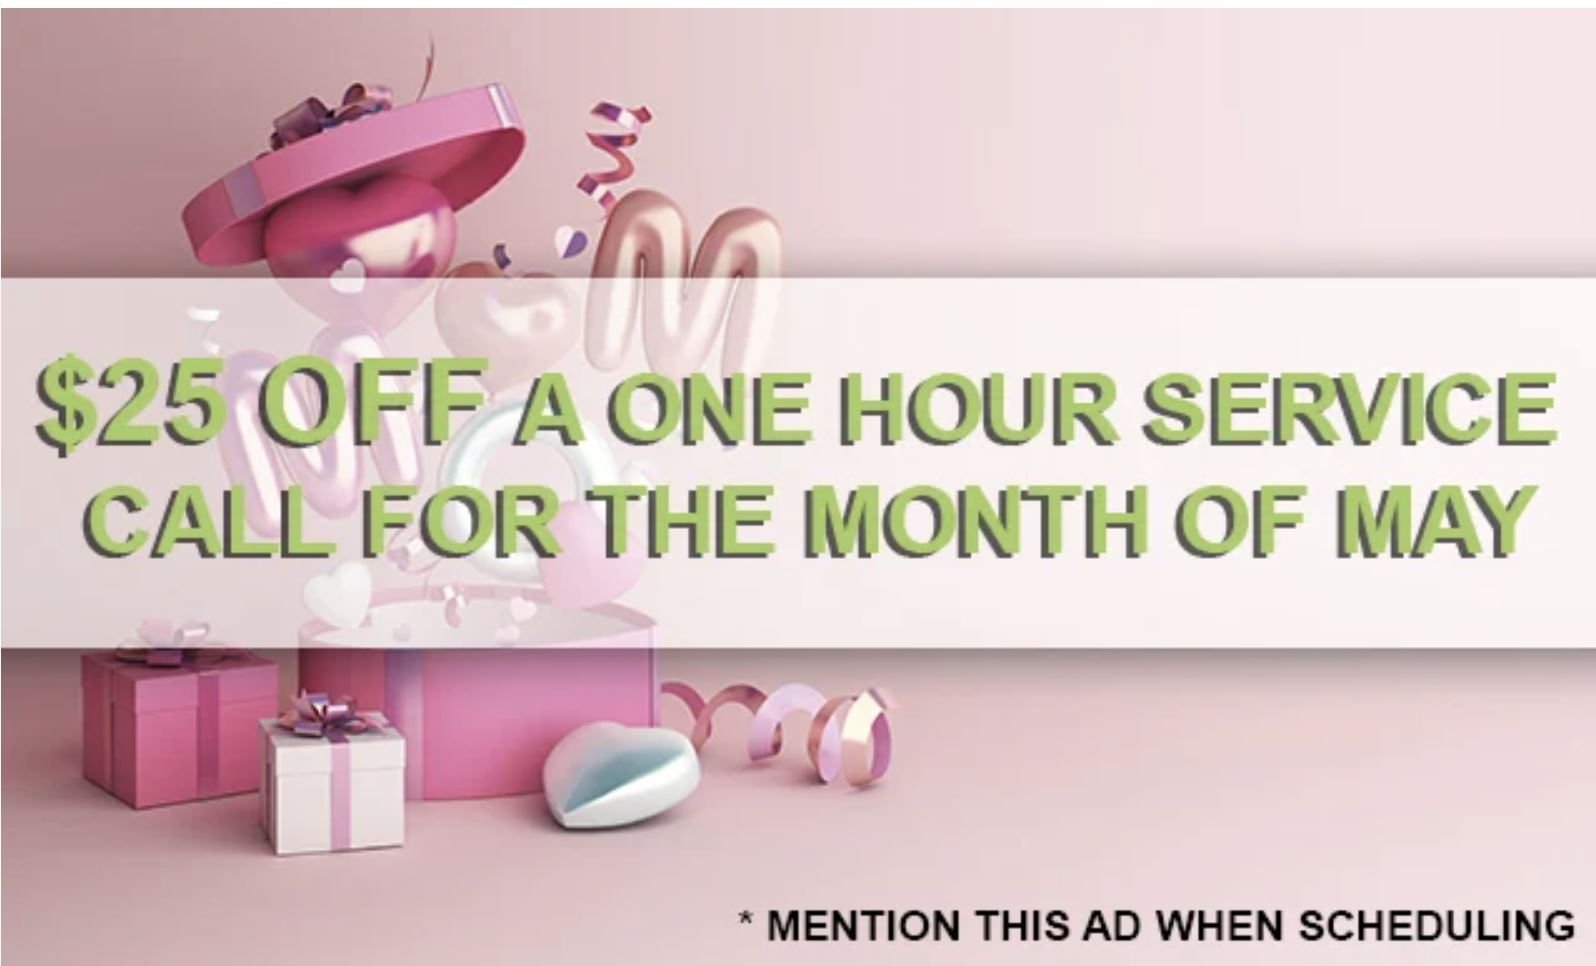 Putman and Son's Plumbing Mother's Day May 2021 Promotion